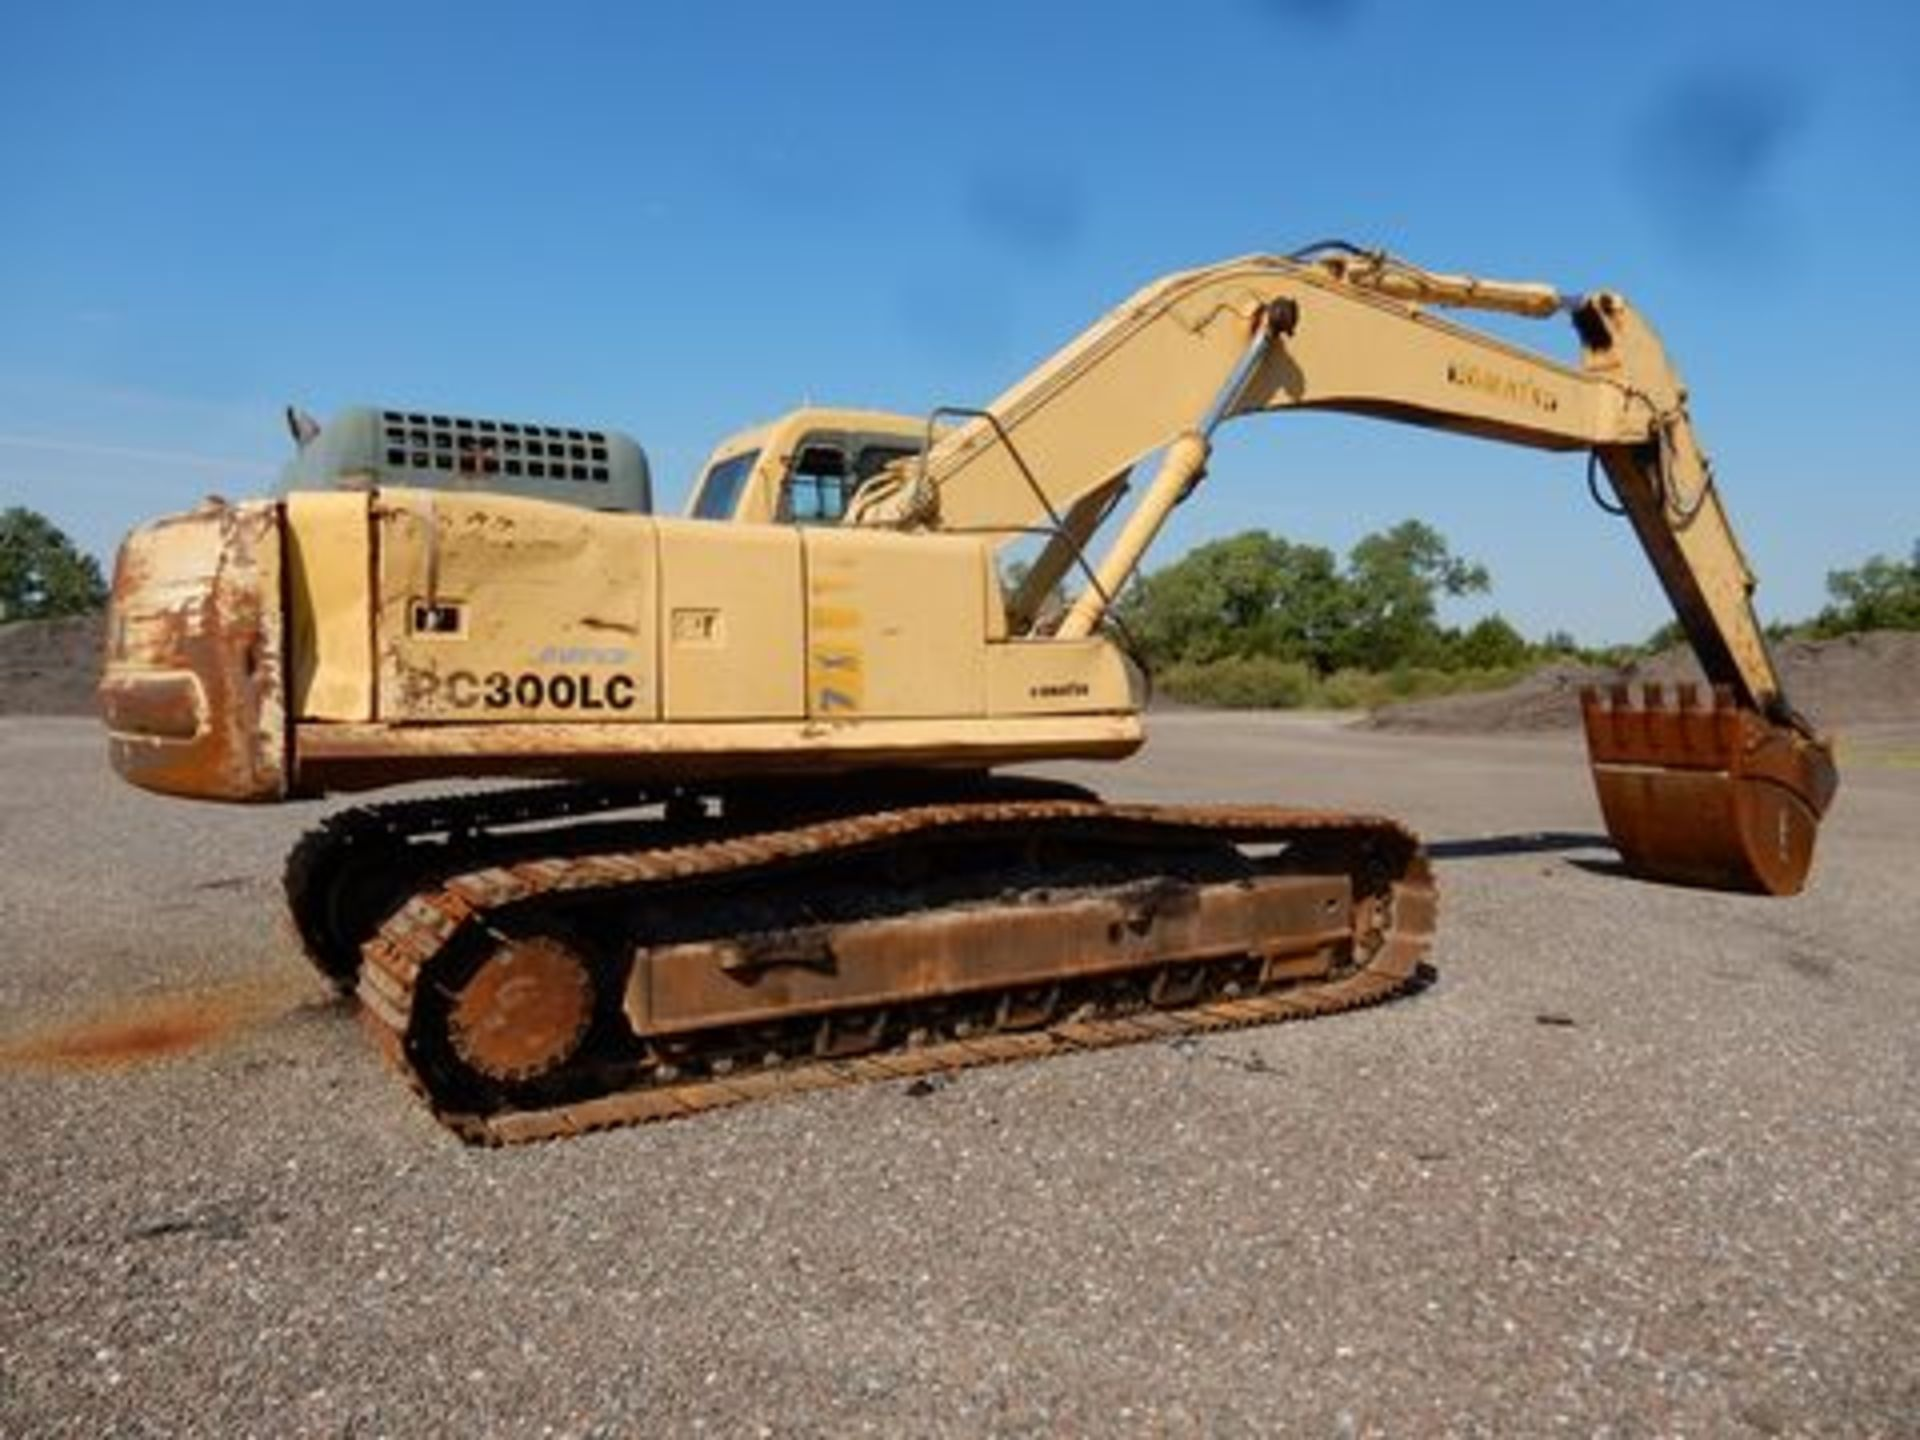 1997 KOMATSU EXCAVATOR, M# PC300LC-6LC, S/N A80735, HOURS N/A, 3-YD BUCKET, MISSING FRONT GLASS - Image 3 of 6